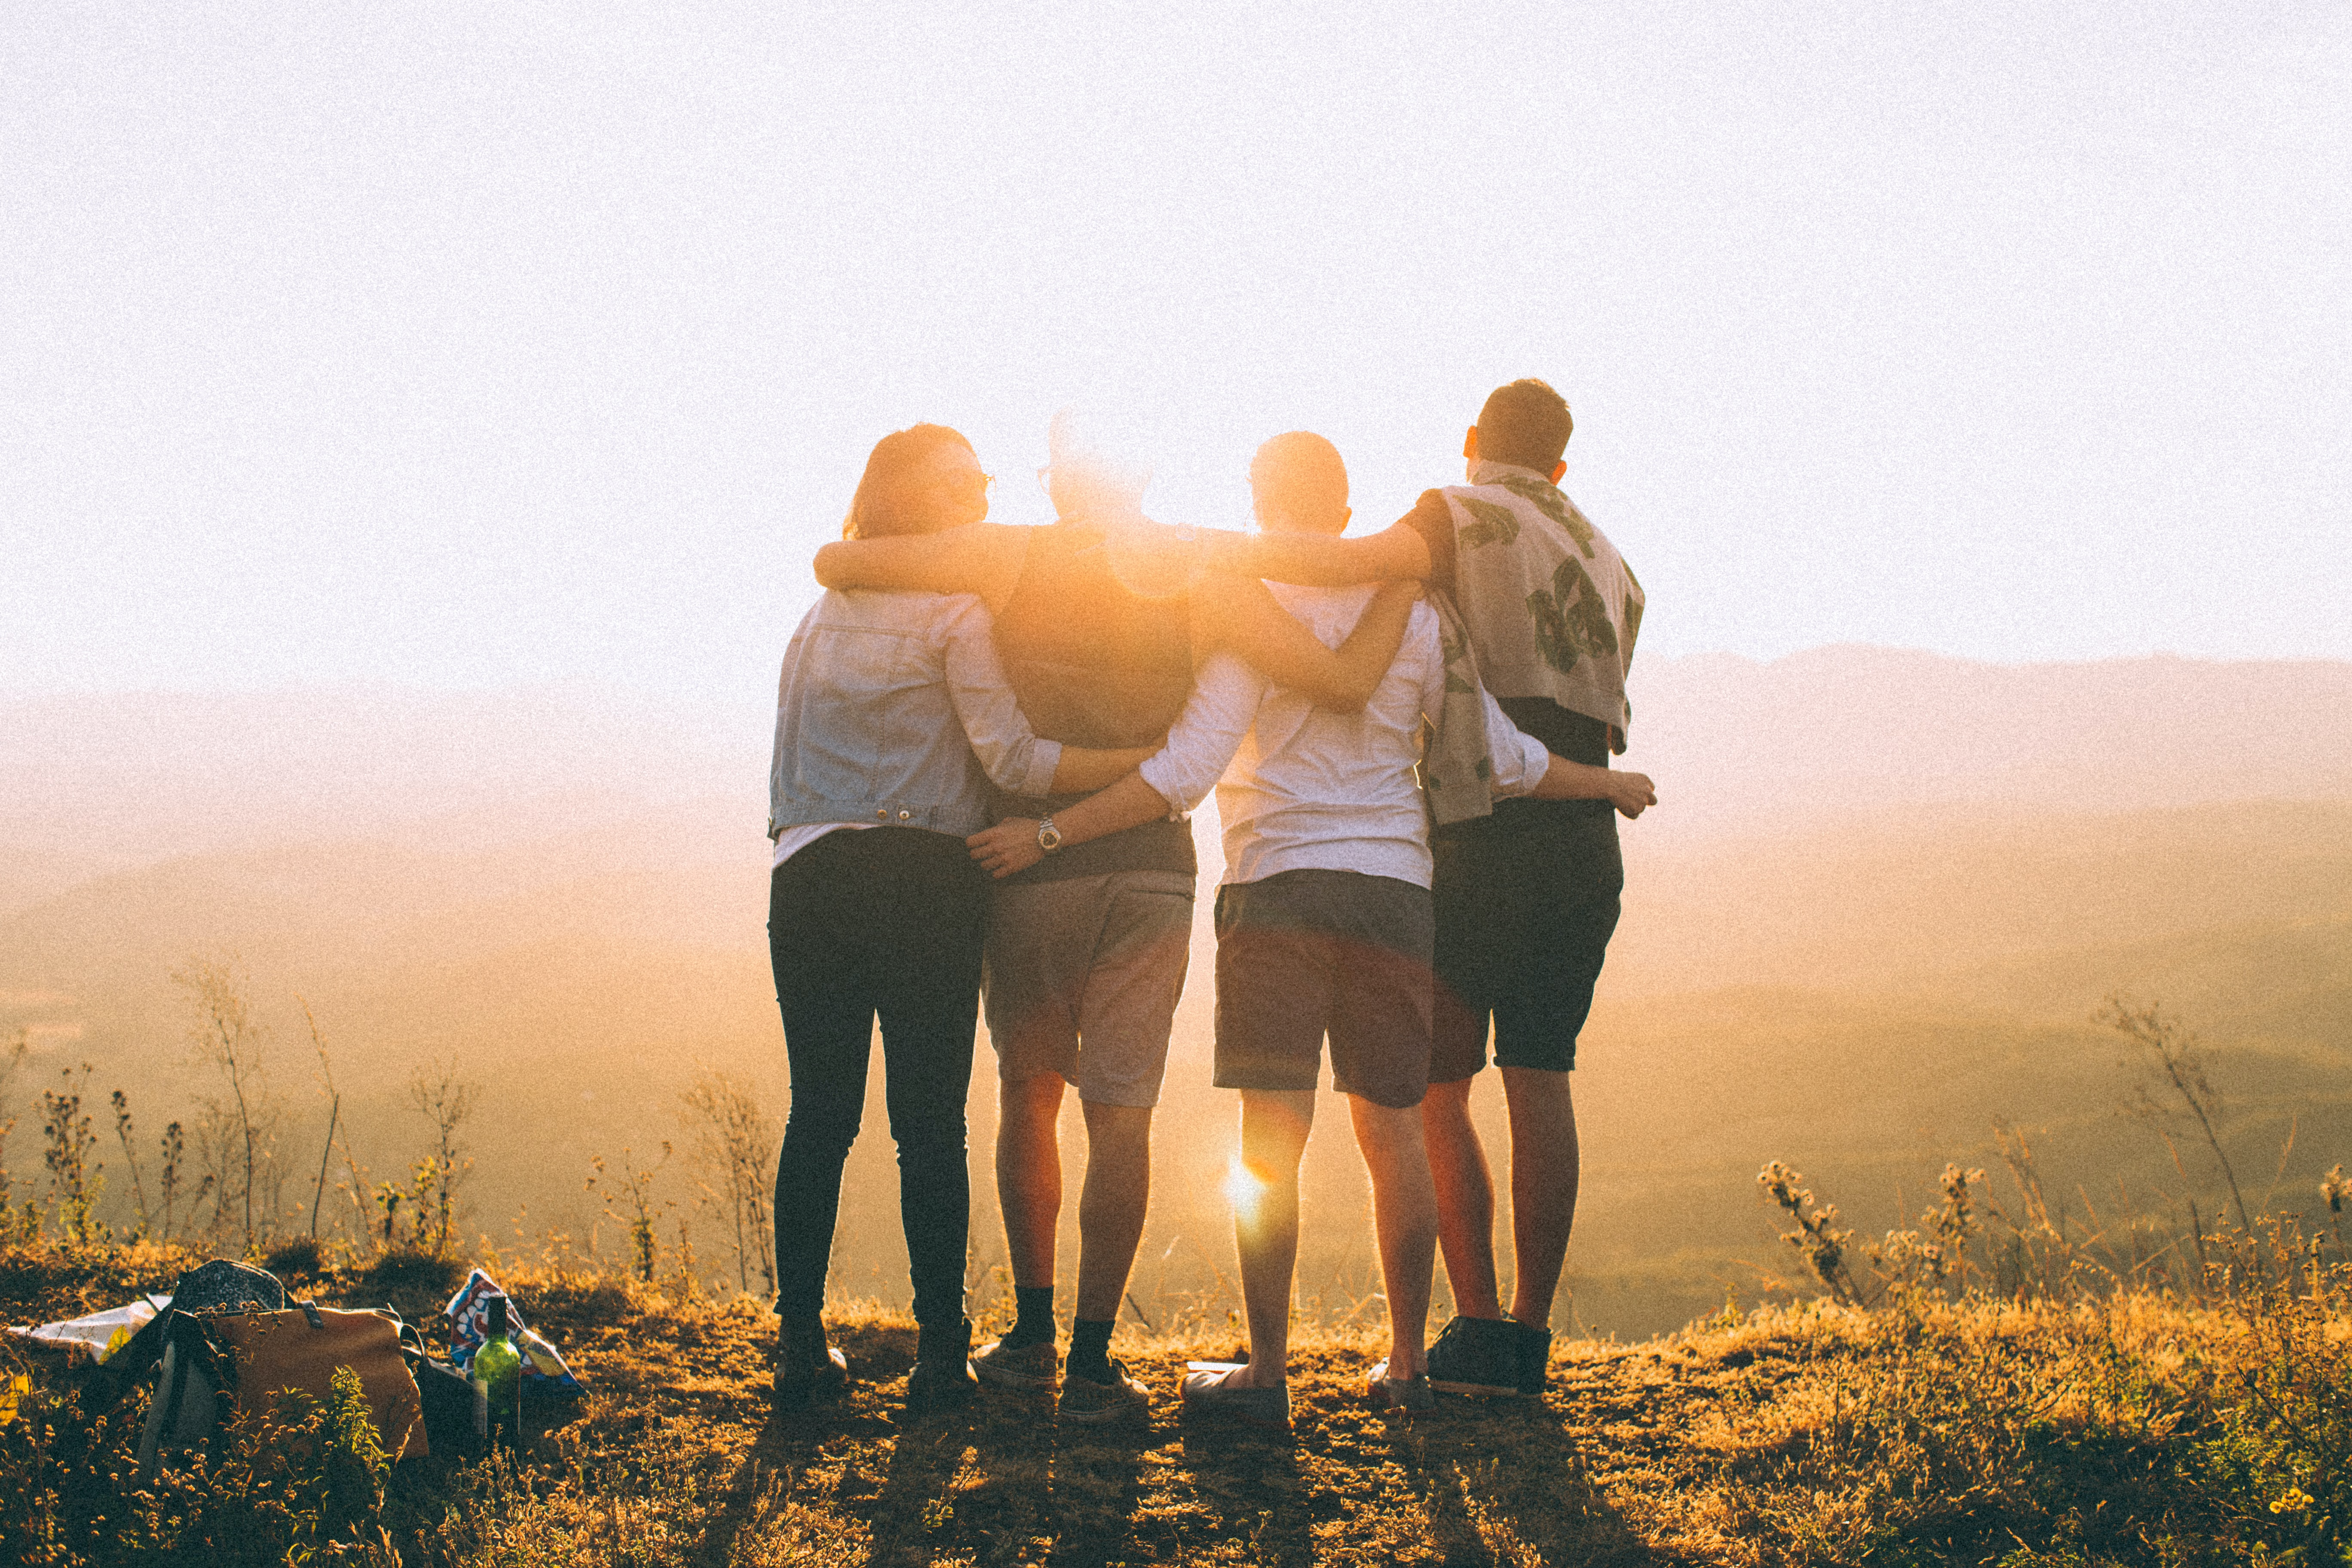 Four young adults, with their backs to the camera, wrap their arms around each other outdoors as bright sun shines around them.